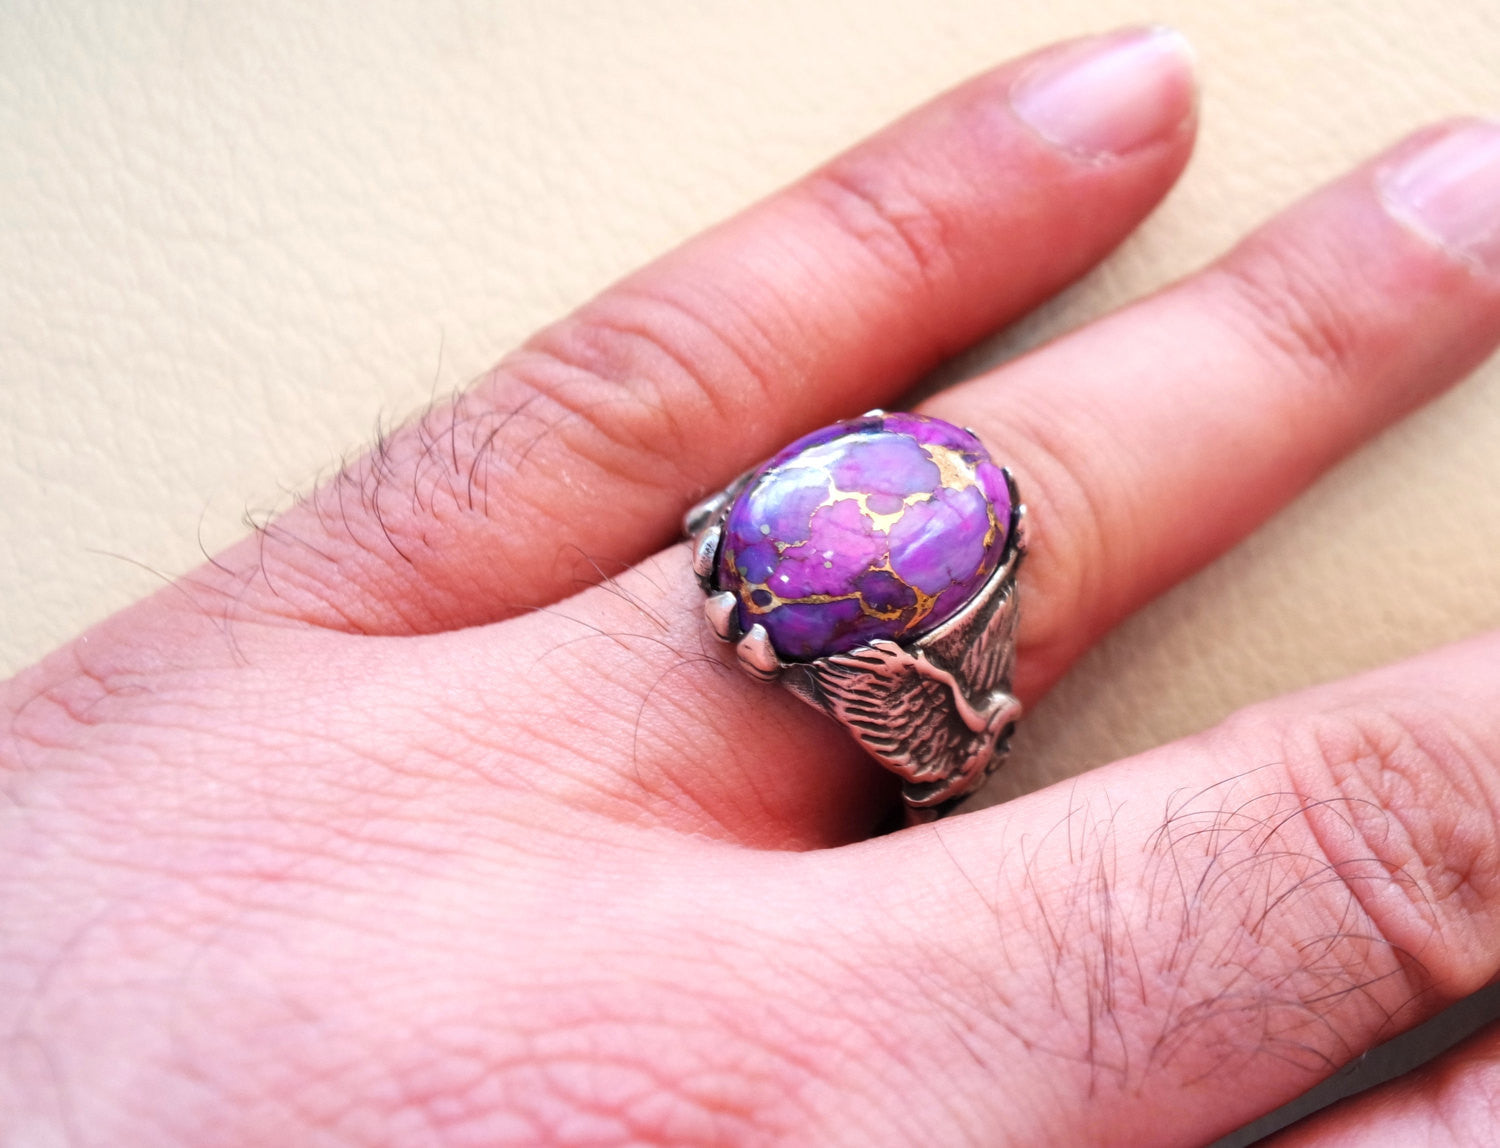 men ring natural semi precious purple mohave copper turquoise eagle design all sizes high quality cabochon man jewelry fast shipping